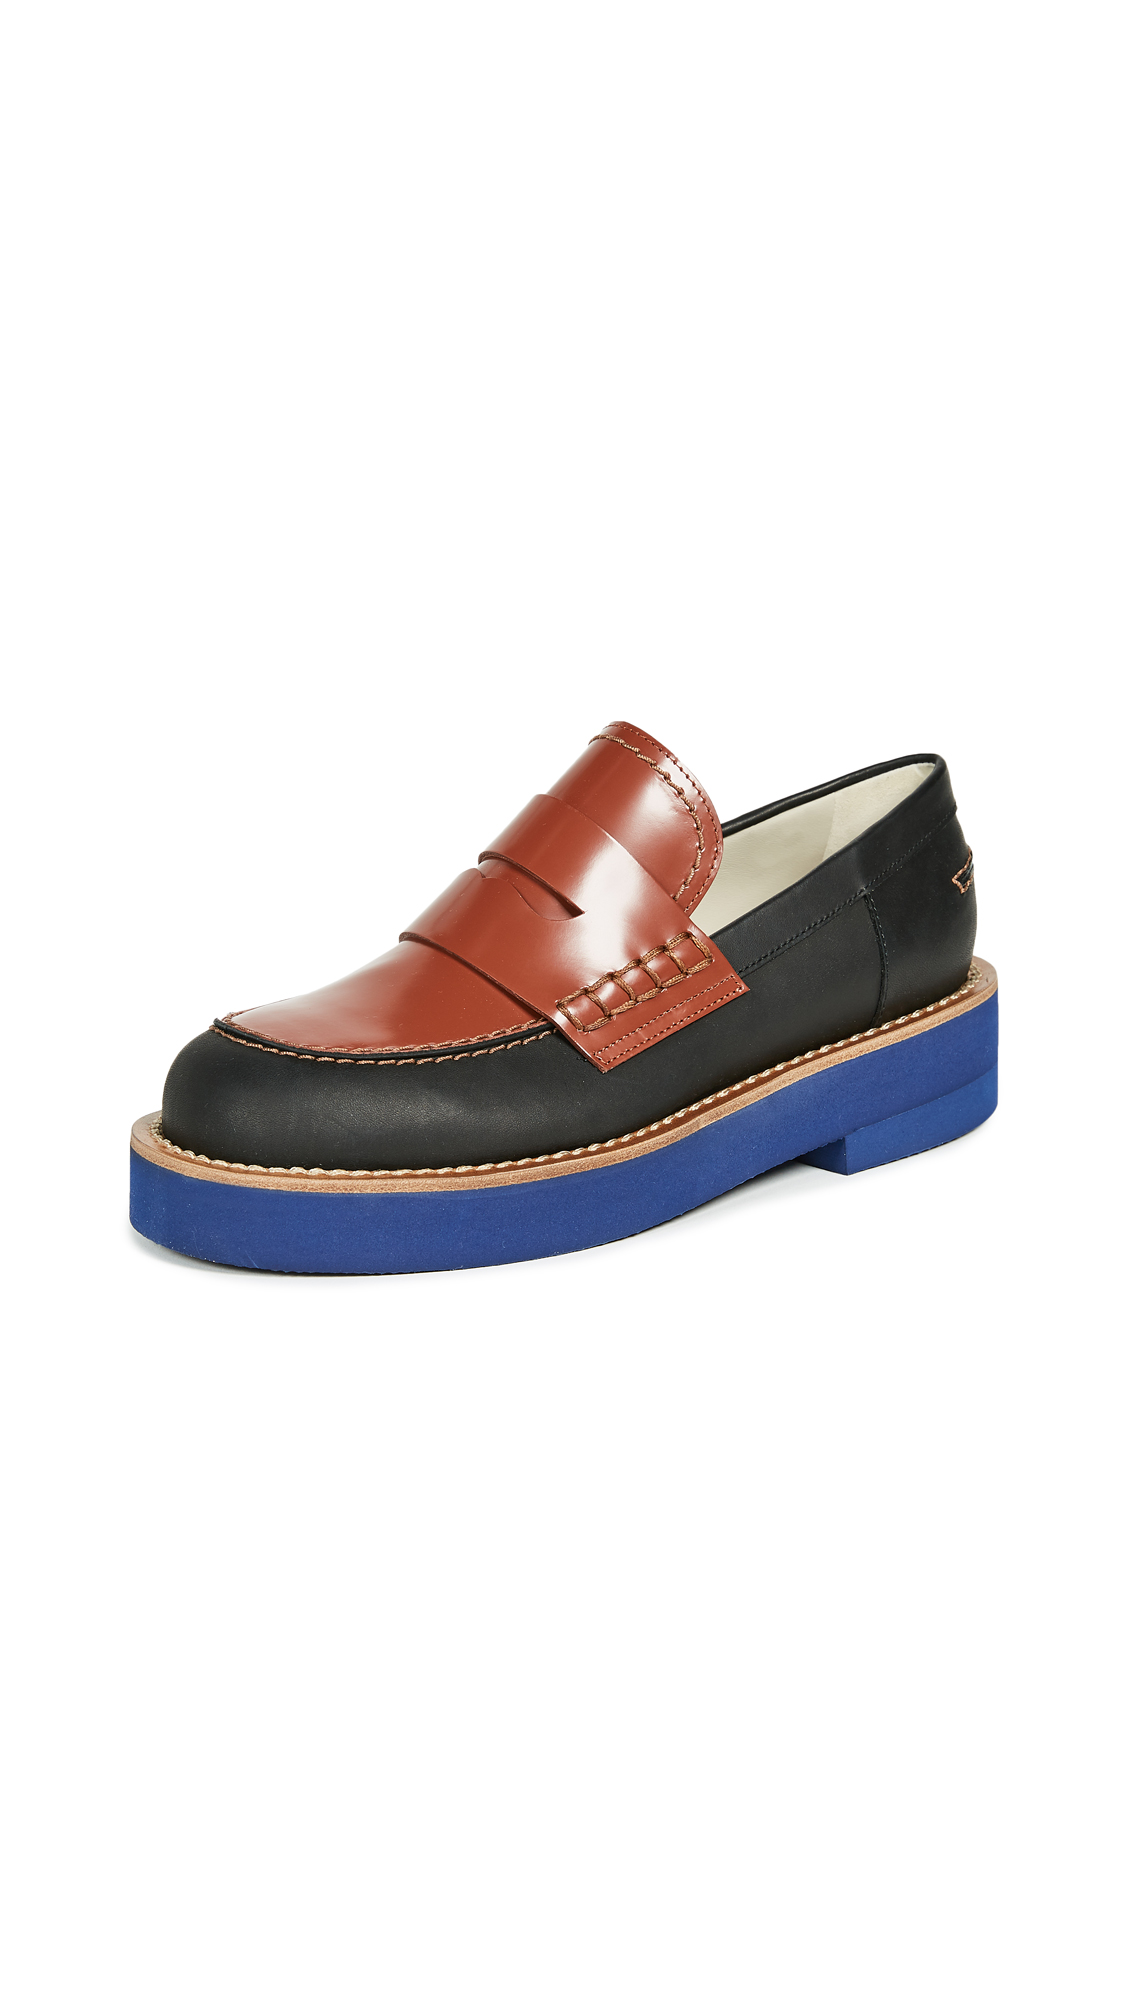 Marni Flat Loafers - Black/Tobacco